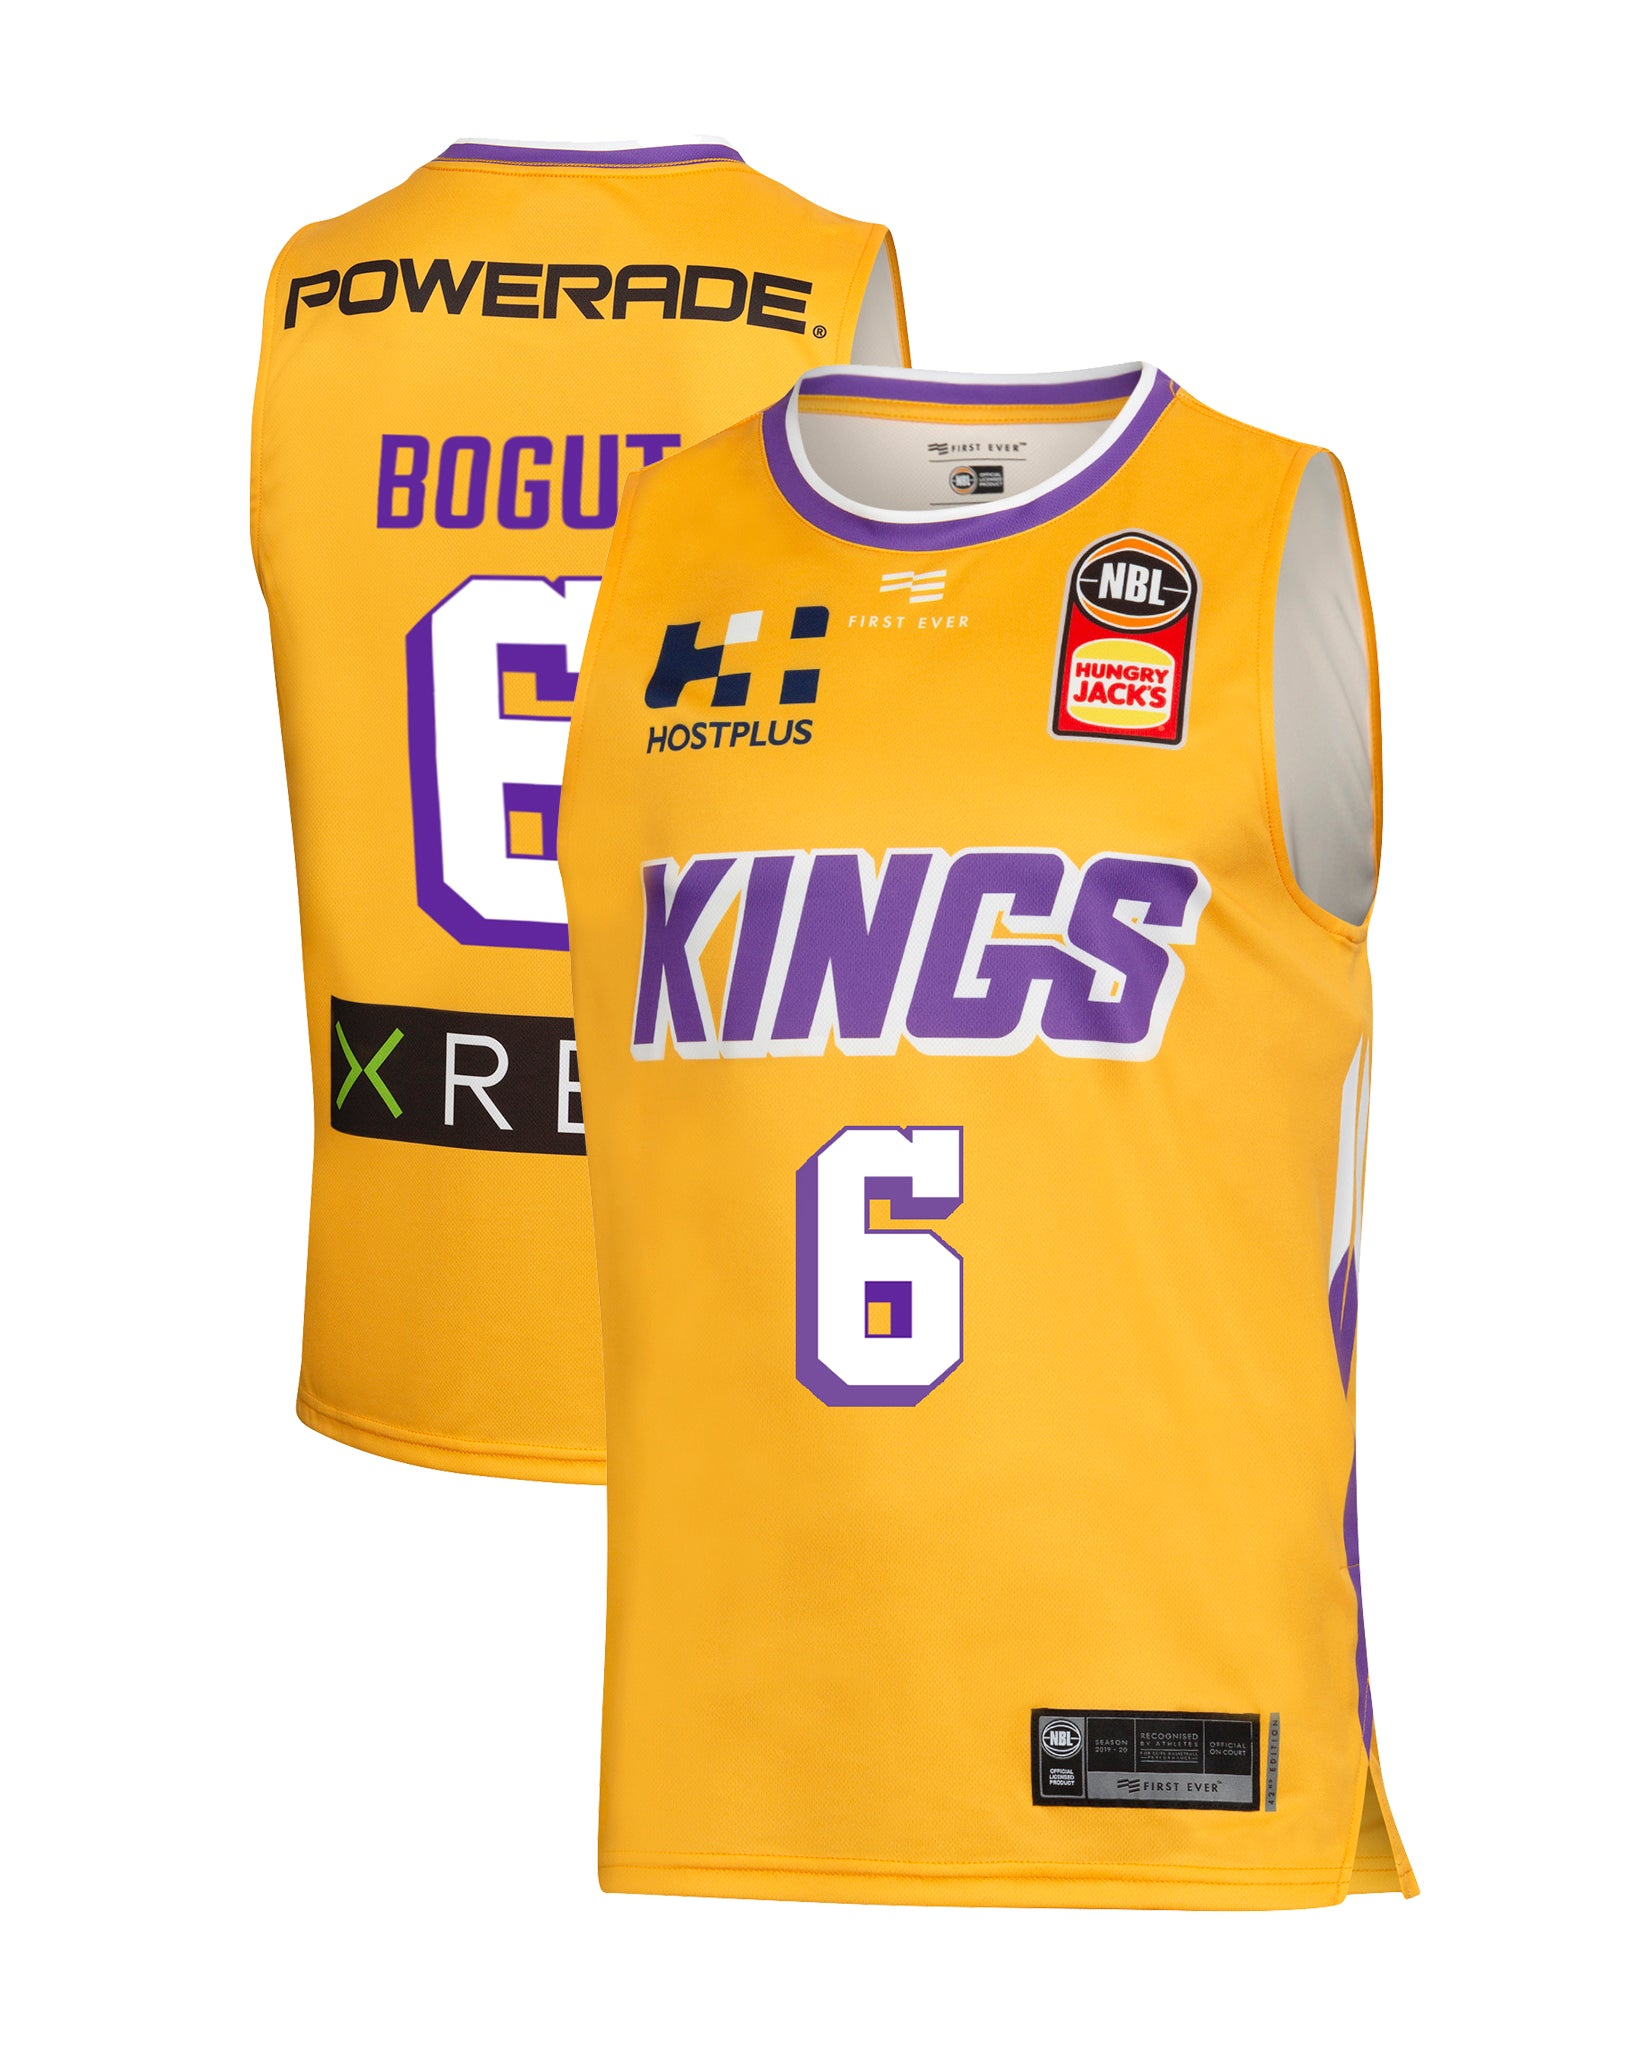 Sydney Kings 19/20 Authentic Away Jersey - Andrew Bogut